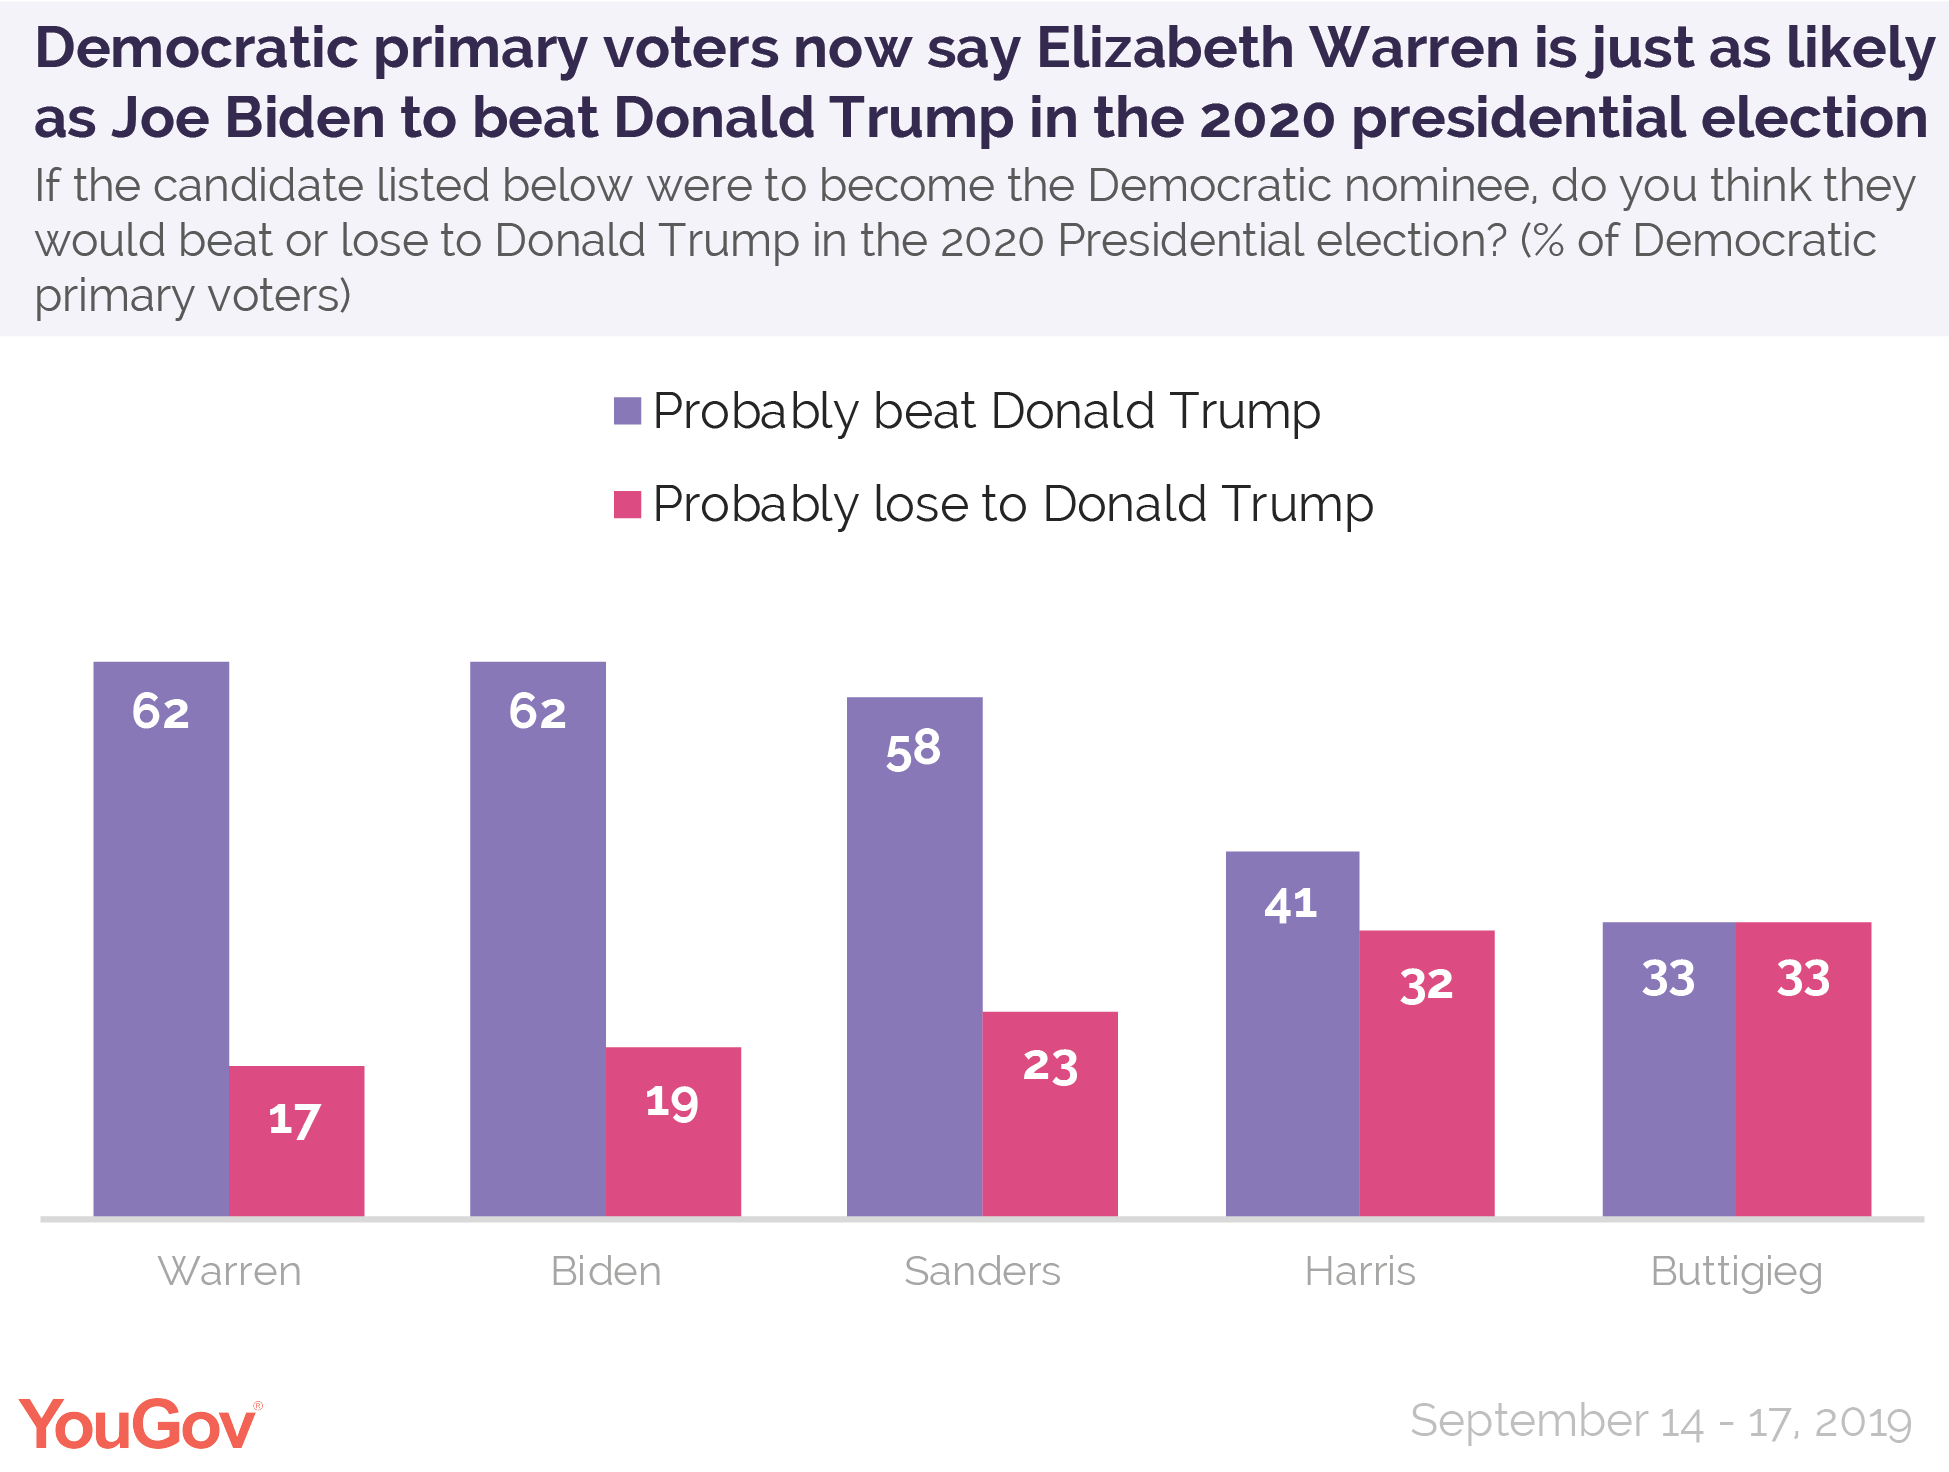 Democratic primary voters now say Elizabeth Warren is just as likely as Joe Biden to beat Donald Trump in the 2020 presidential election